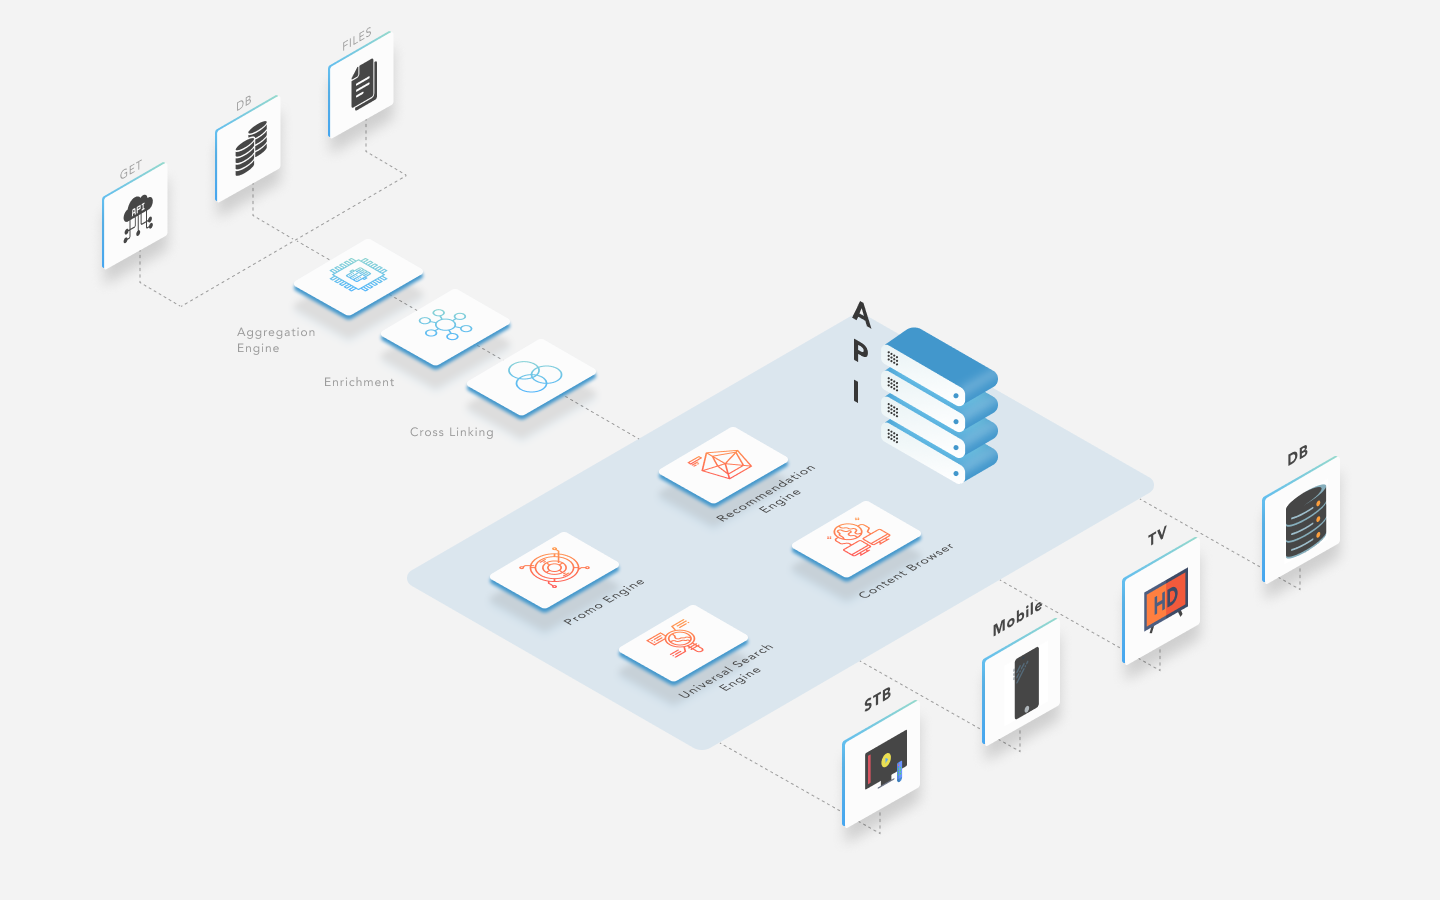 Utelly content discovery platform overview to Extract, Load and Transform data, into Search and Recommendations APIs